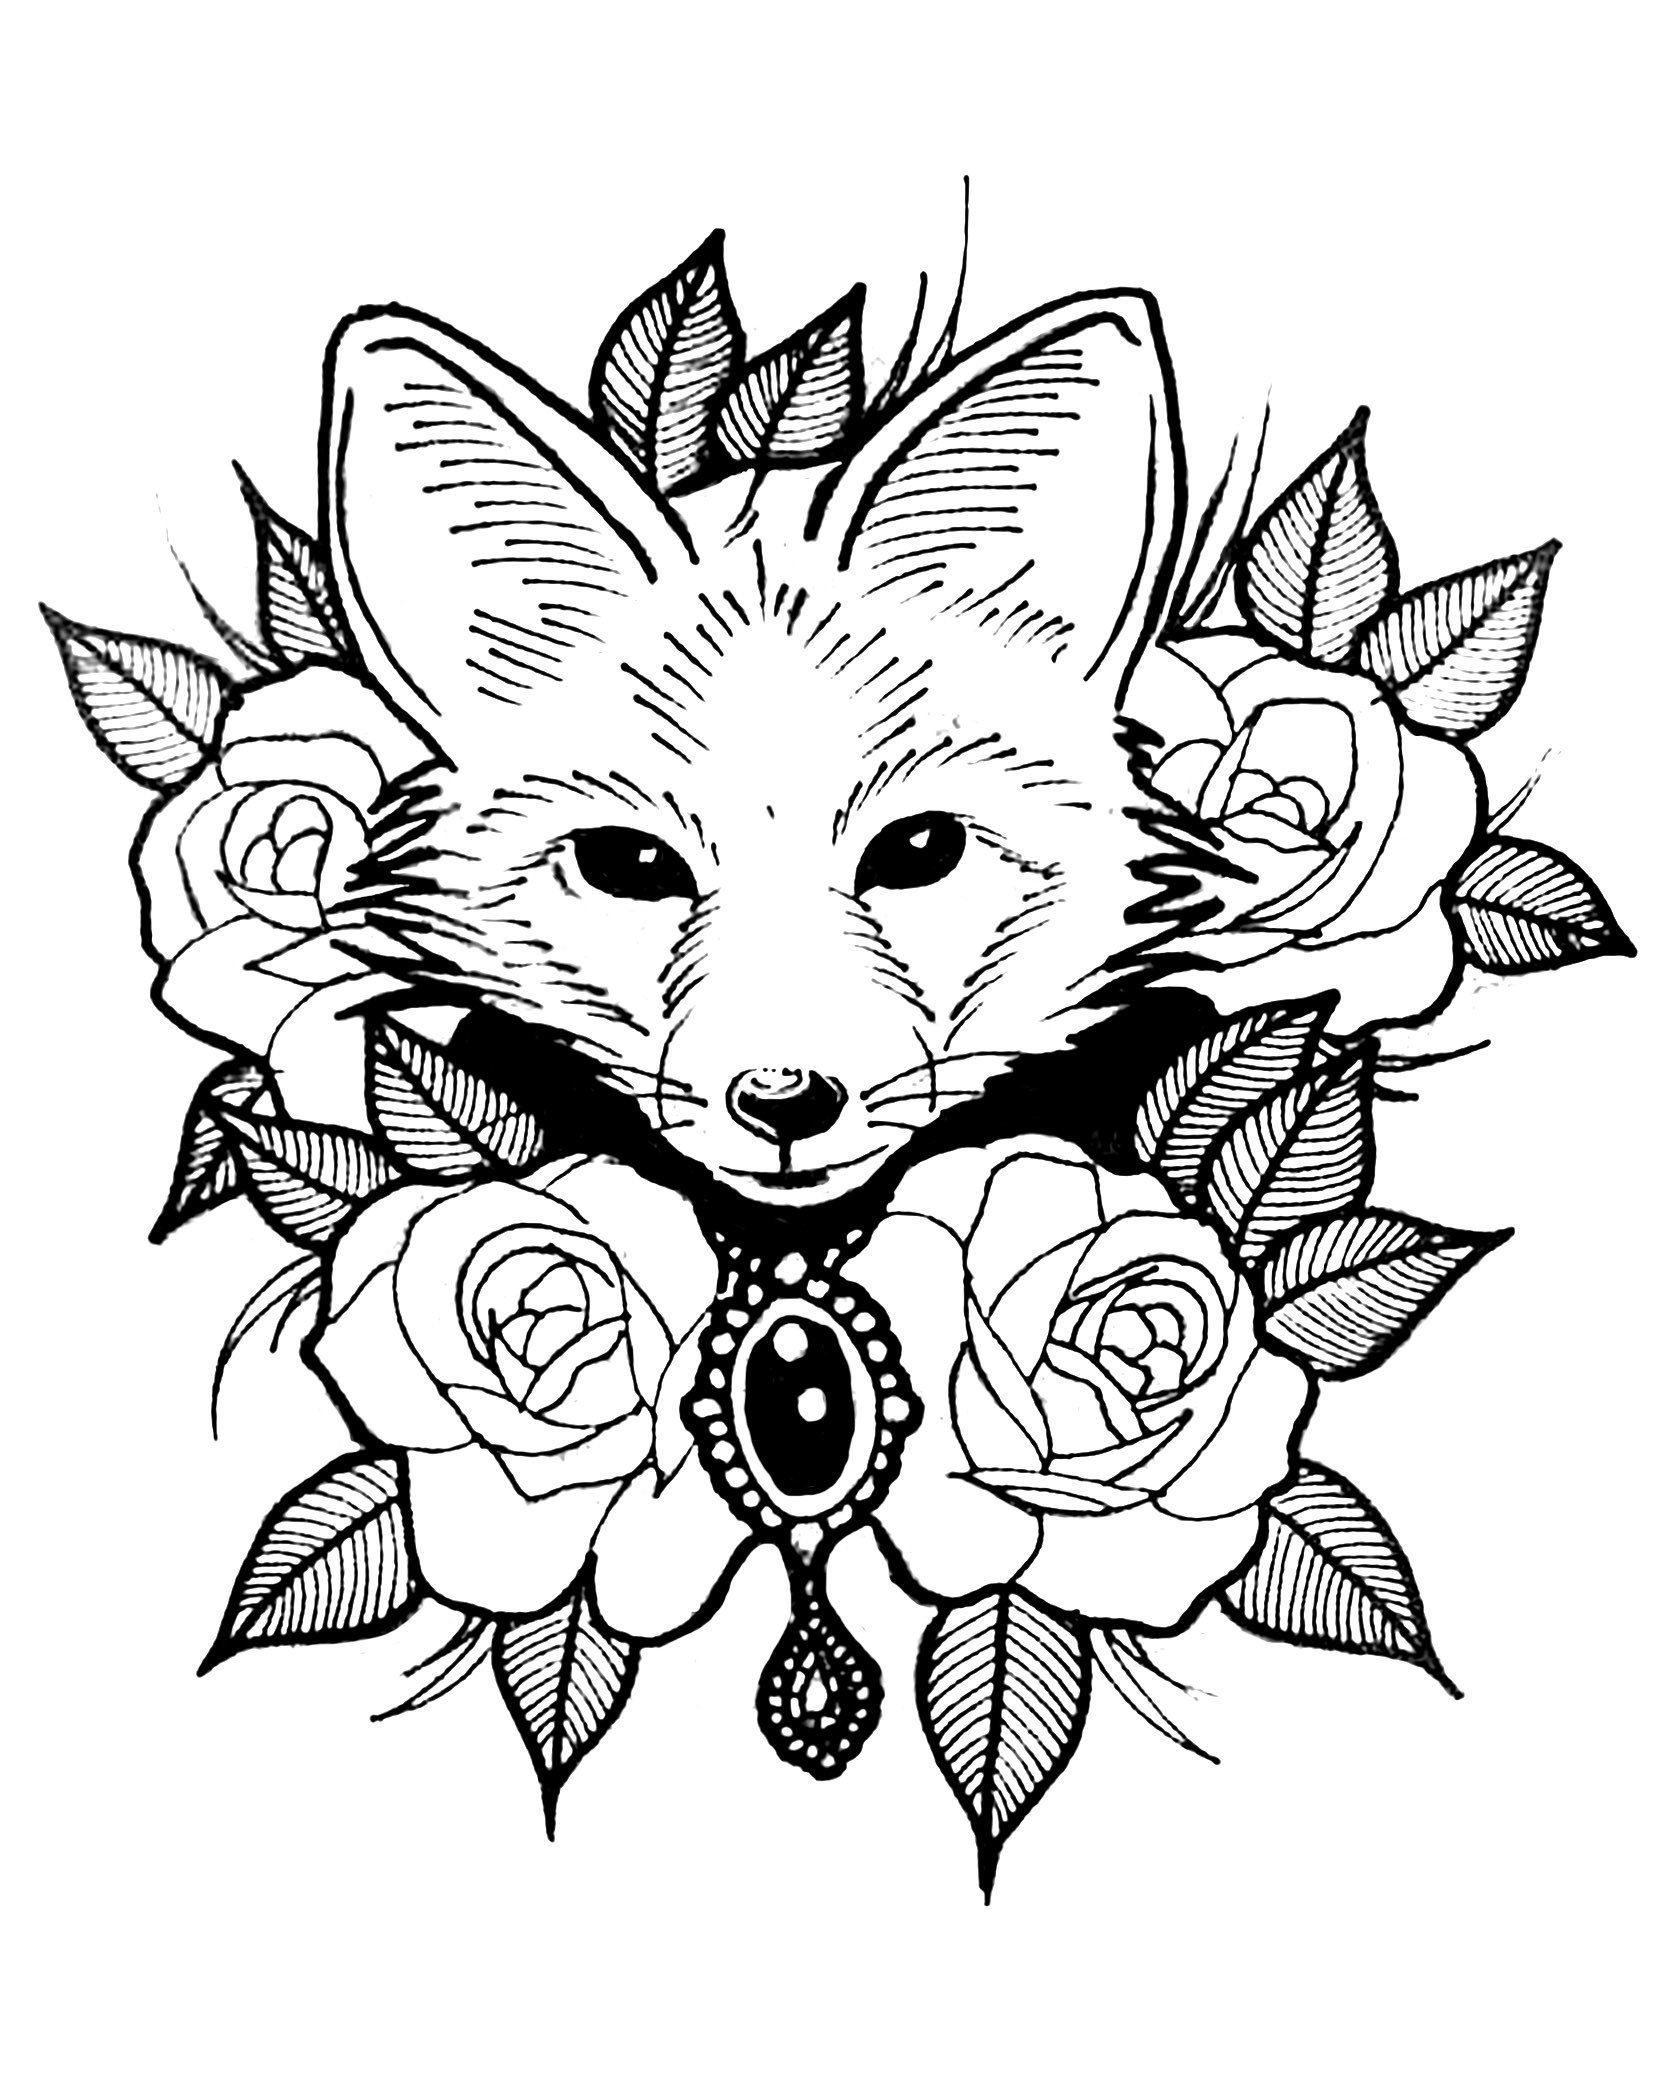 Cute Animal Coloring Pages Printable Coloring Pages Cute Animal Coloring For Adults In 2020 Zoo Animal Coloring Pages Fox Coloring Page Animal Coloring Books